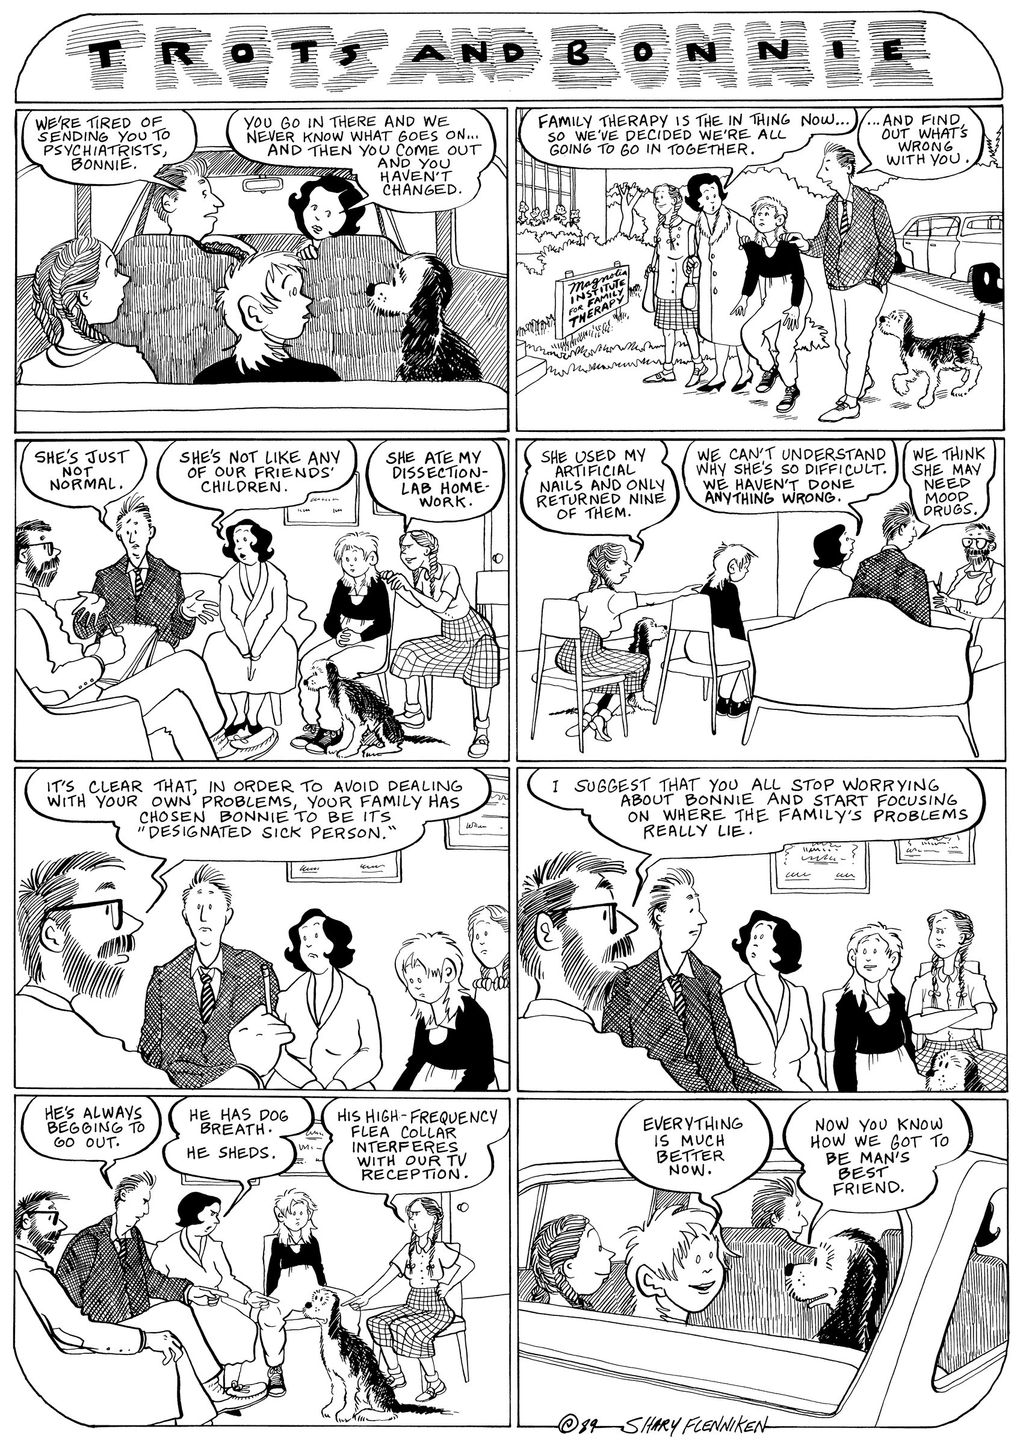 """Bonnie's family heads to therapy in this 1989 strip of the irreverent, poignant Seattle-based comic """"Trots and Bonnie."""" (Courtesy of New York Review of Books)"""